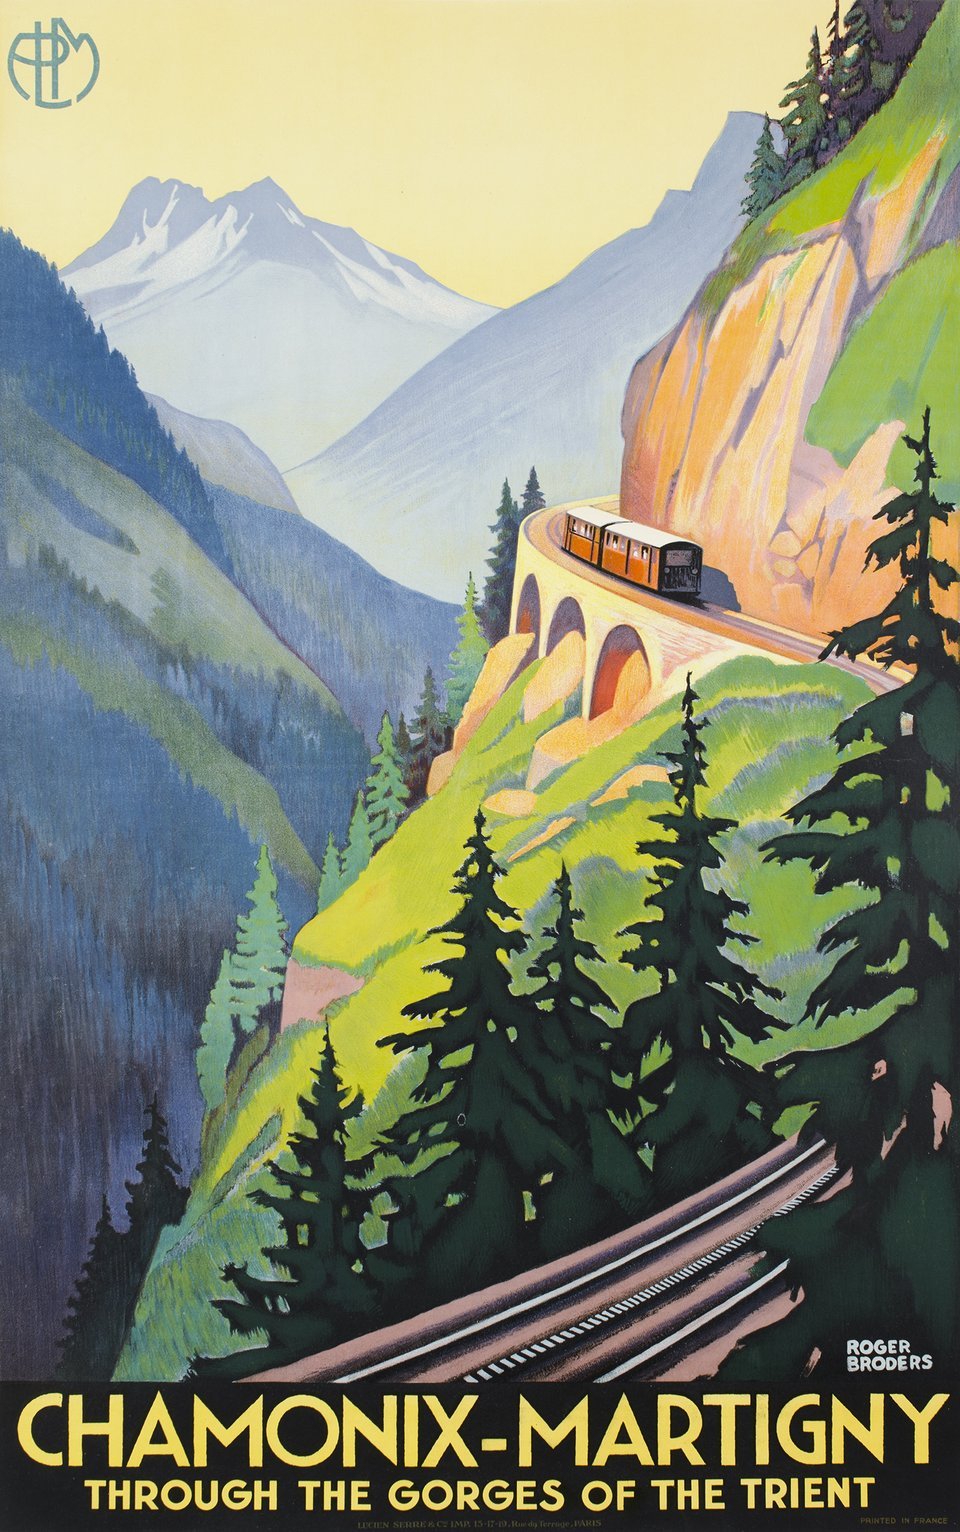 Chamonix-Martigny, Through the gorges of the Trient – Vintage poster – Roger BRODERS – 1930